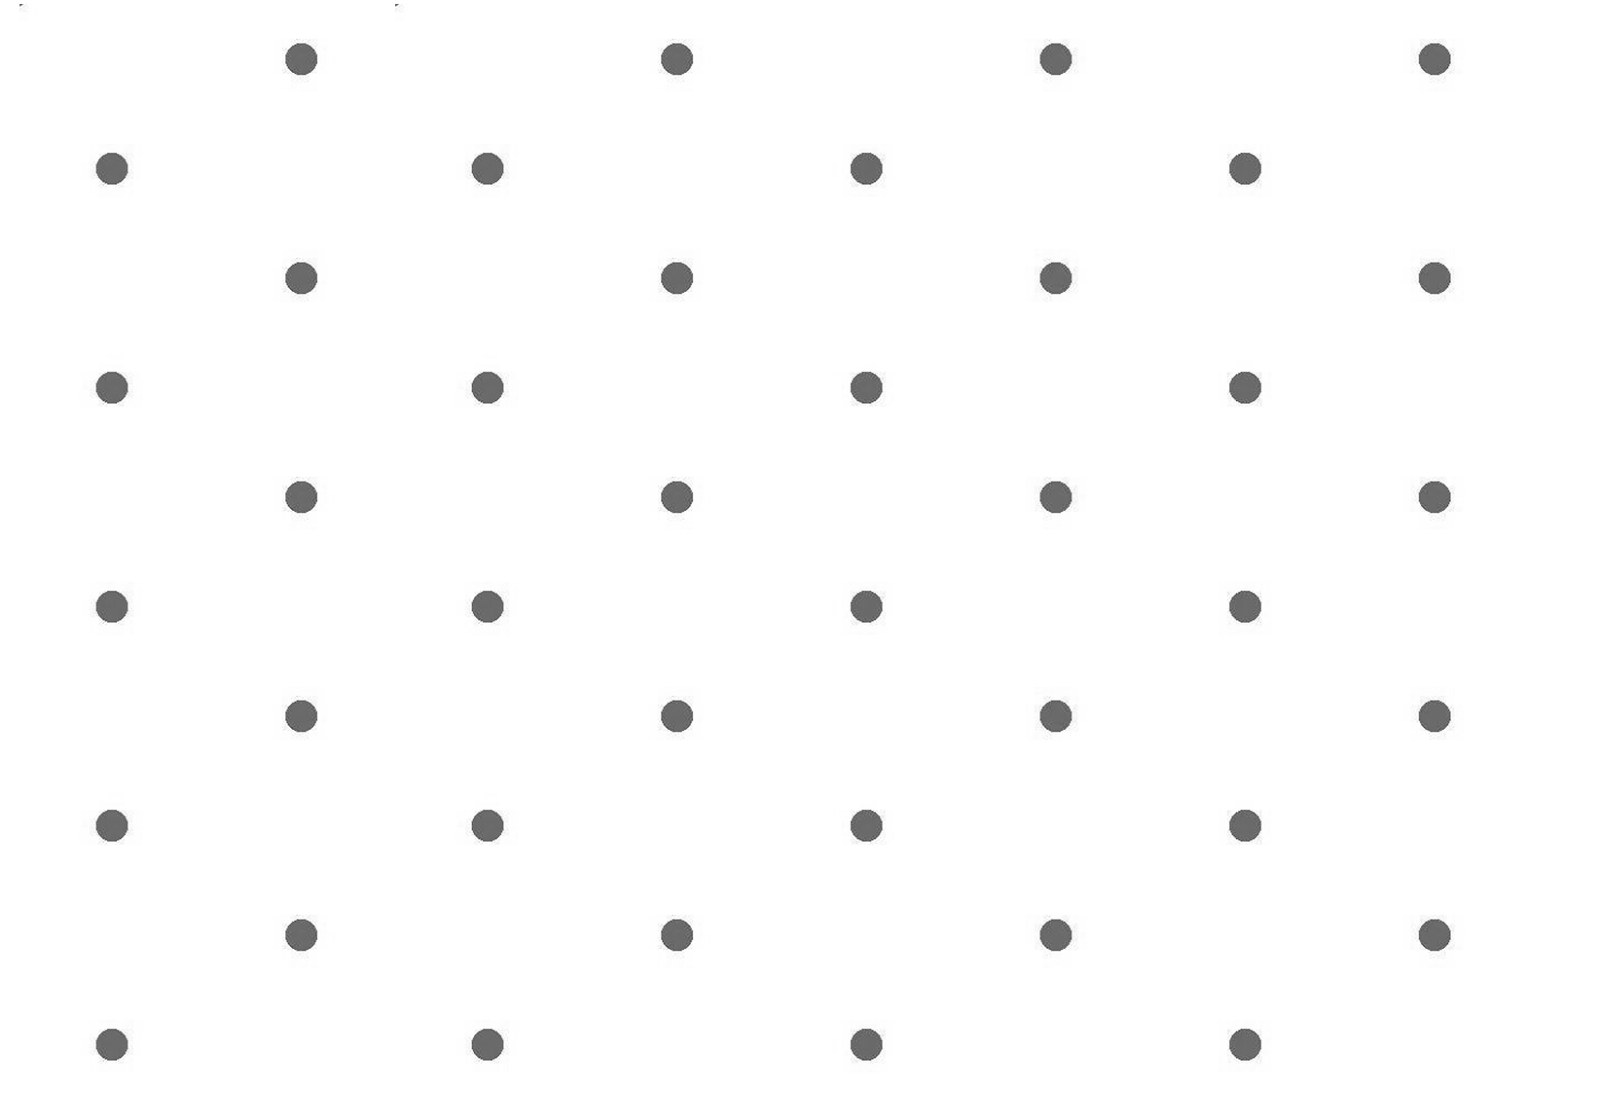 photograph about Dotty Paper Printable identify MEDIAN Use Steward arithmetic education: dotty paper